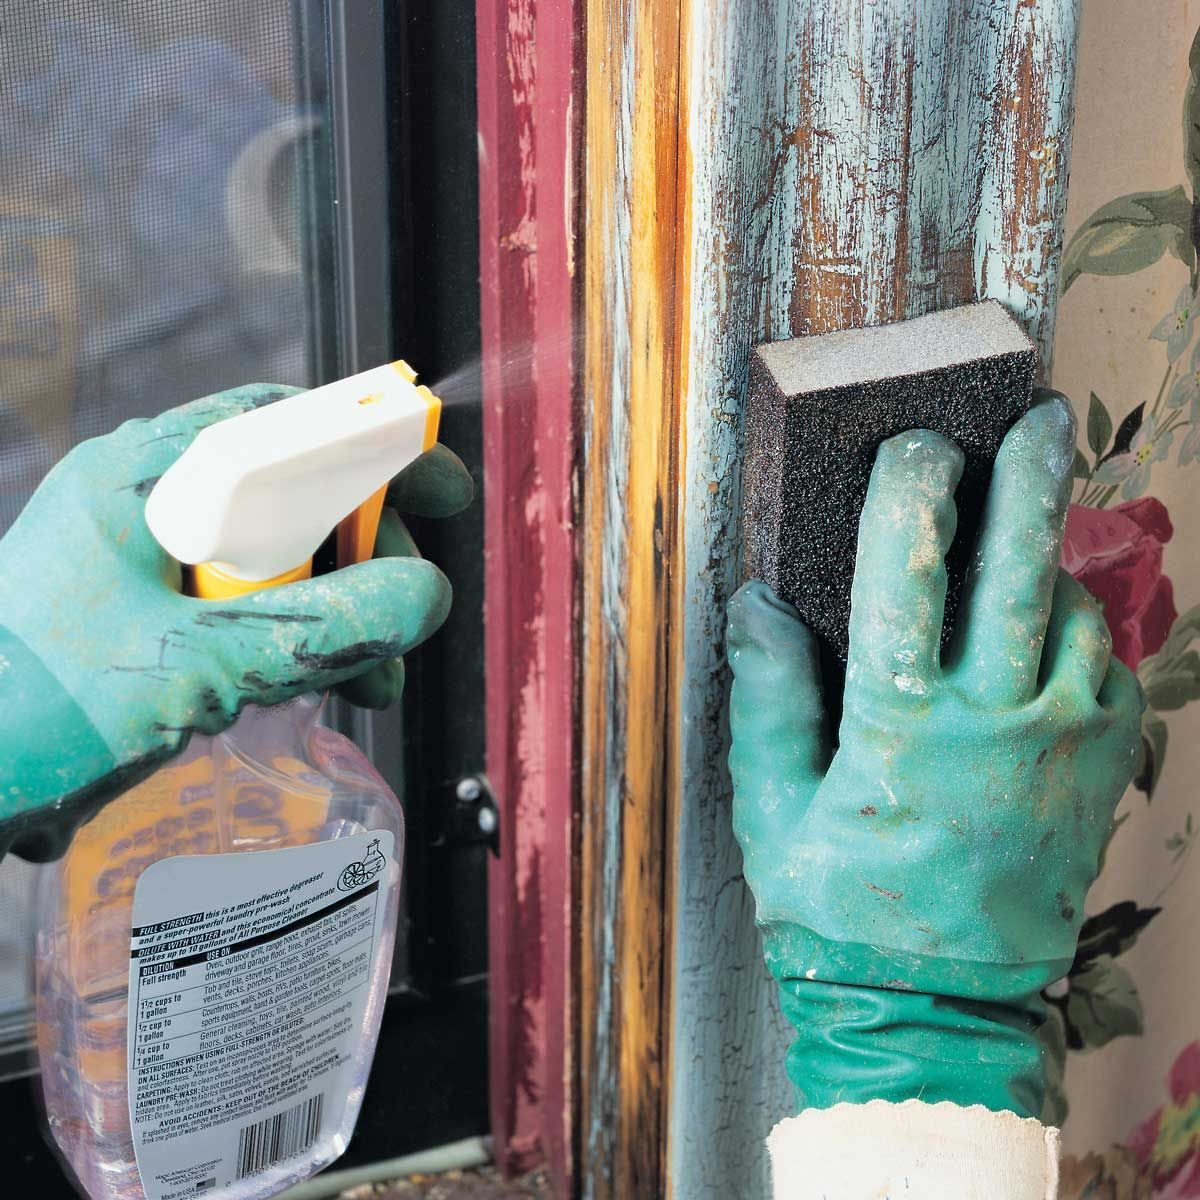 How To Remove Lead Paint Safely Lead Paint Lead Paint Removal Home Safety Tips